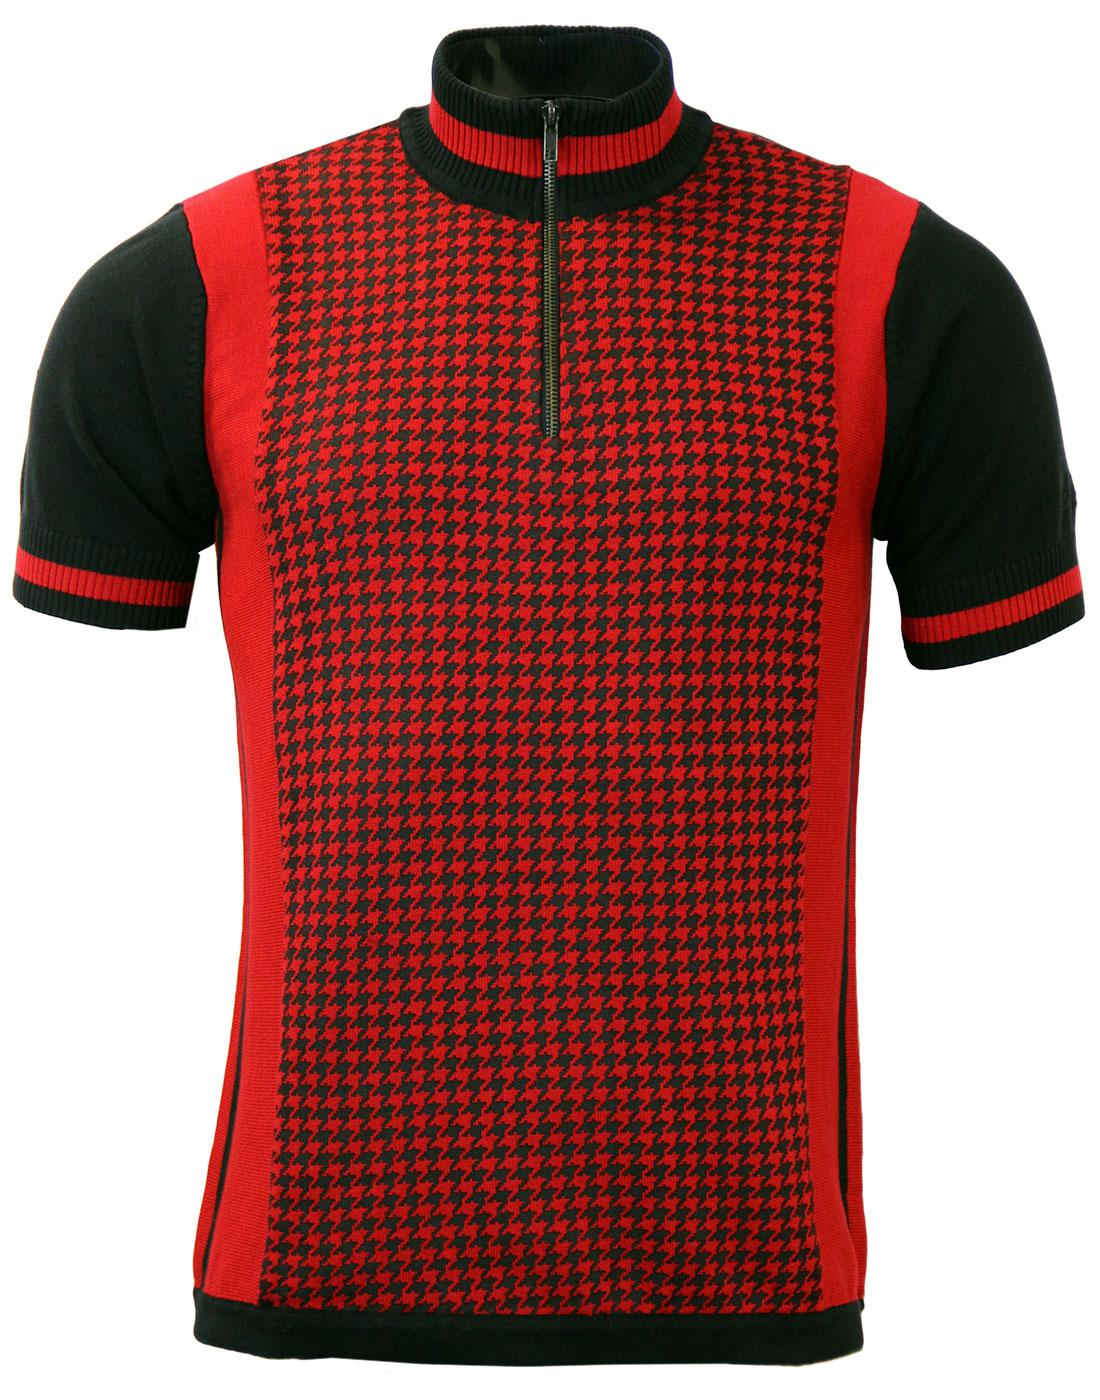 Roue MADCAP ENGLAND 60s Mod Dogtooth Cycling Top R